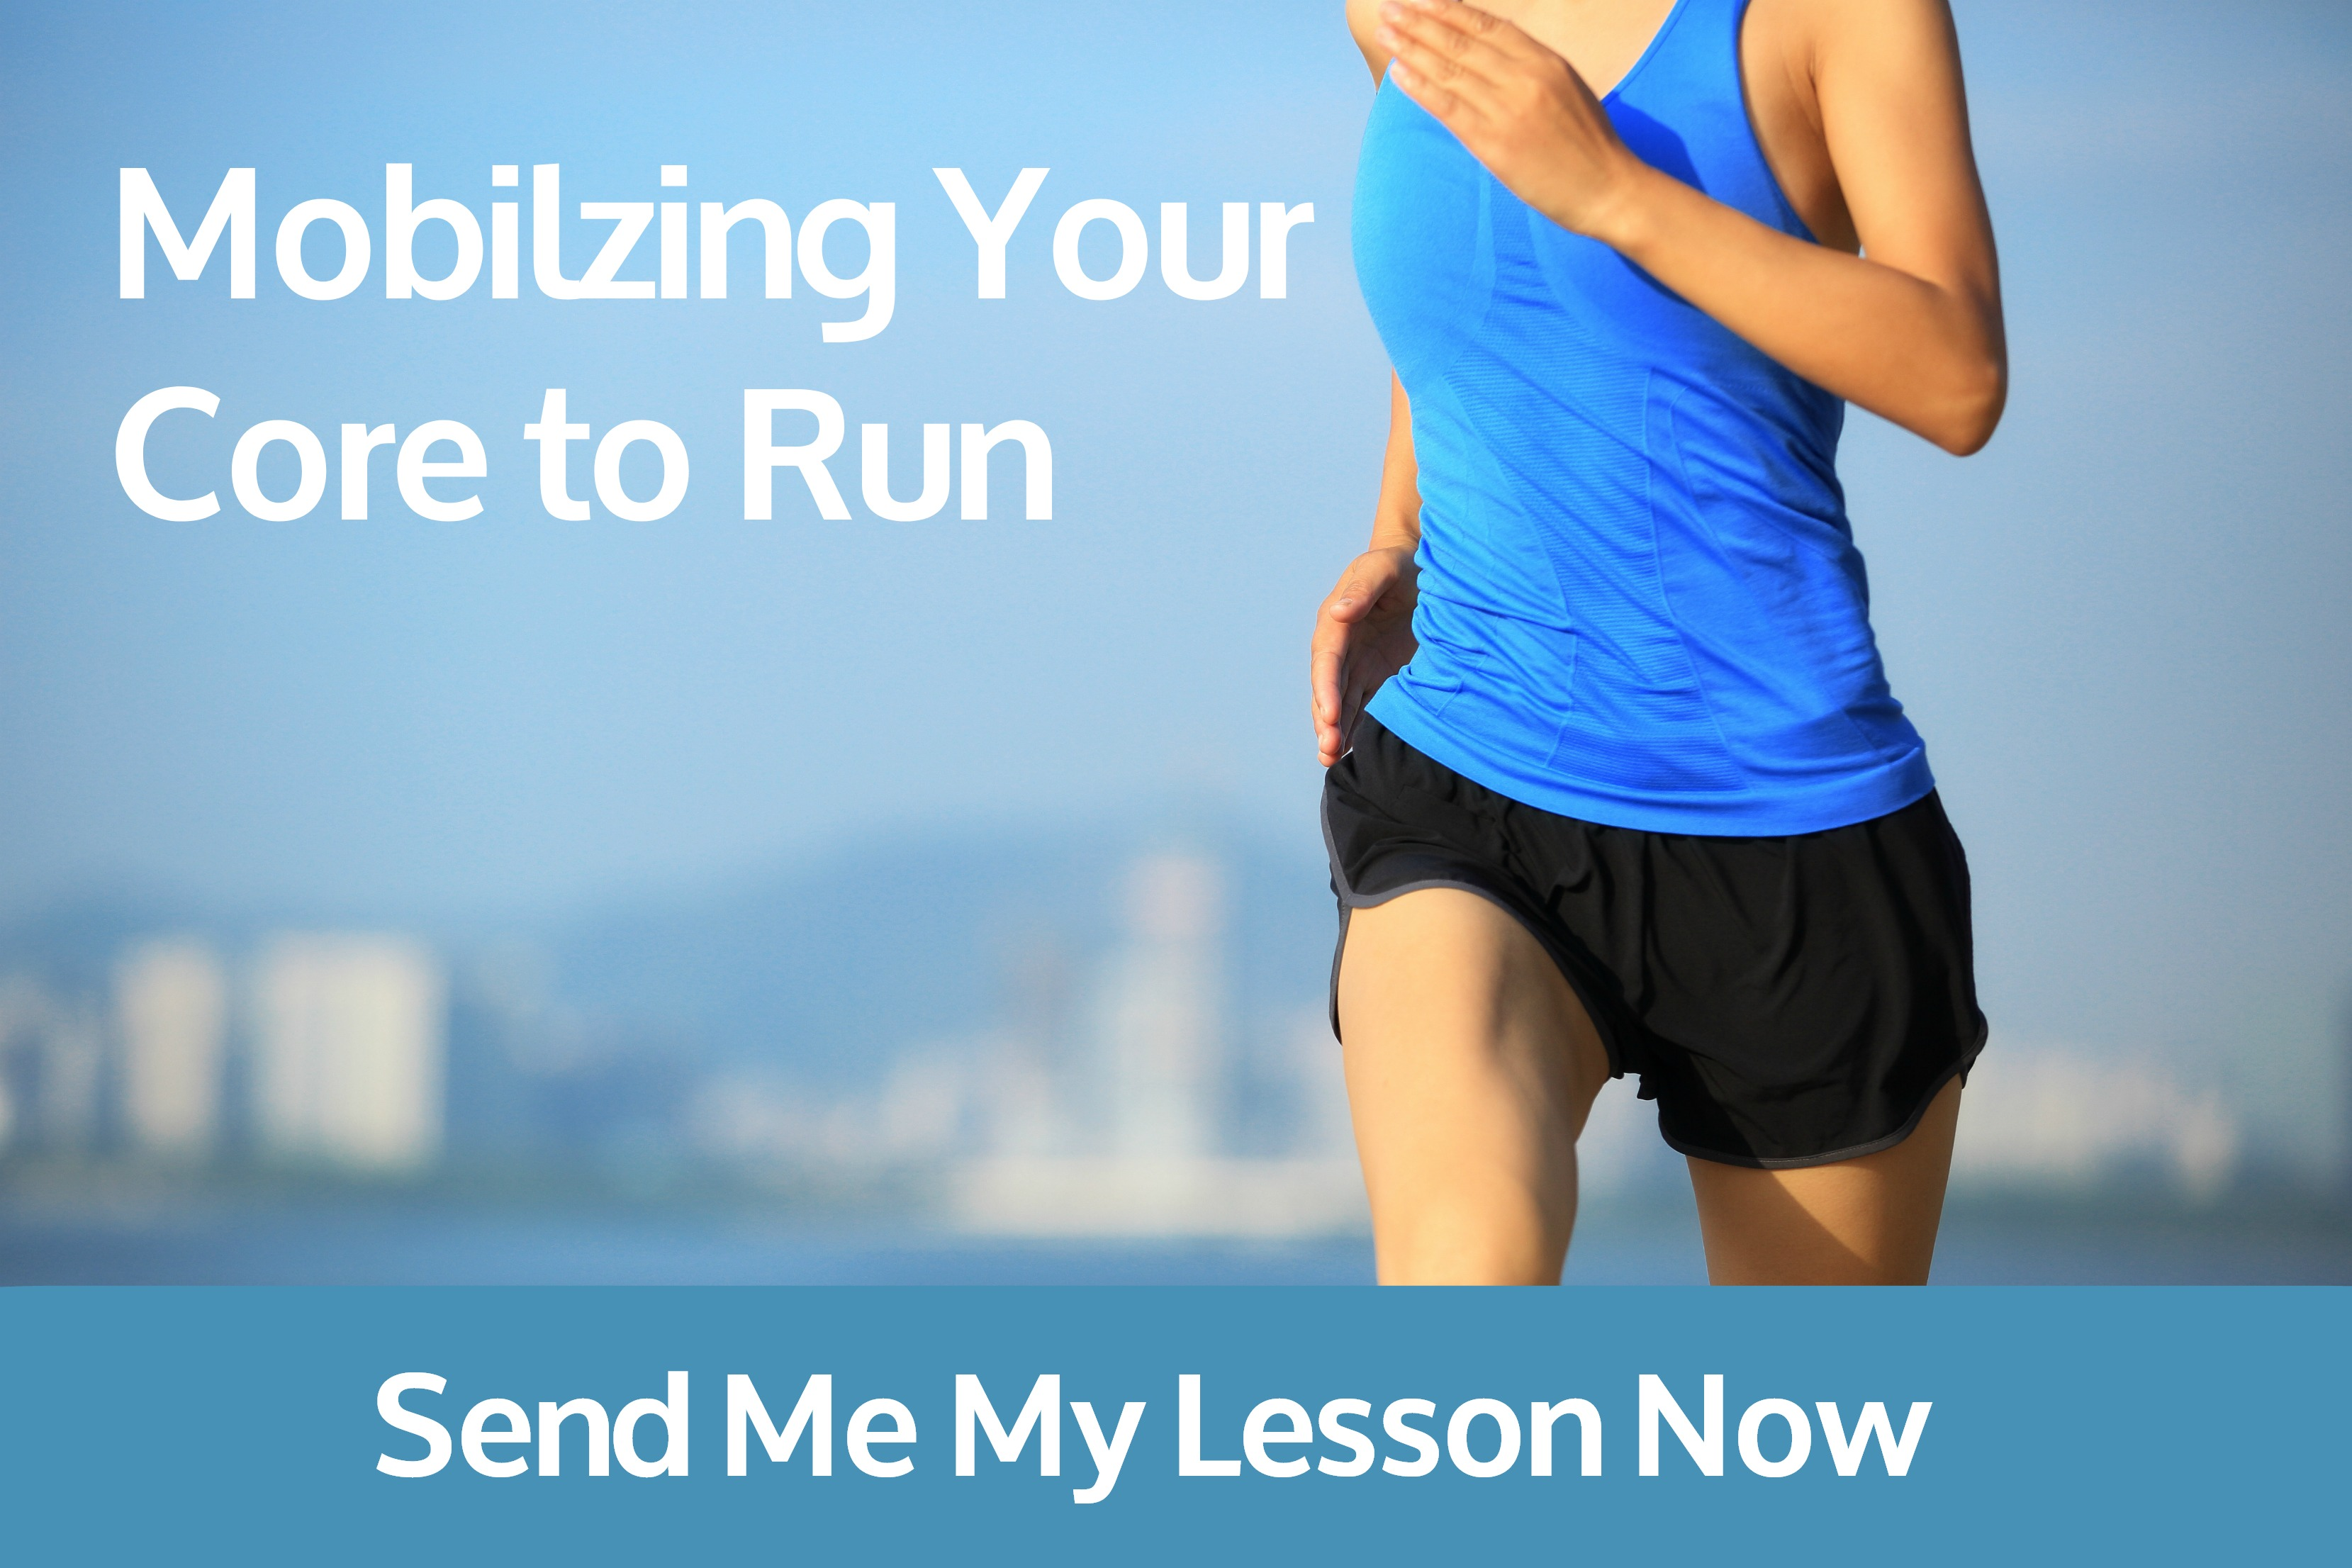 Click here to get Mobilizing Your Core to Run